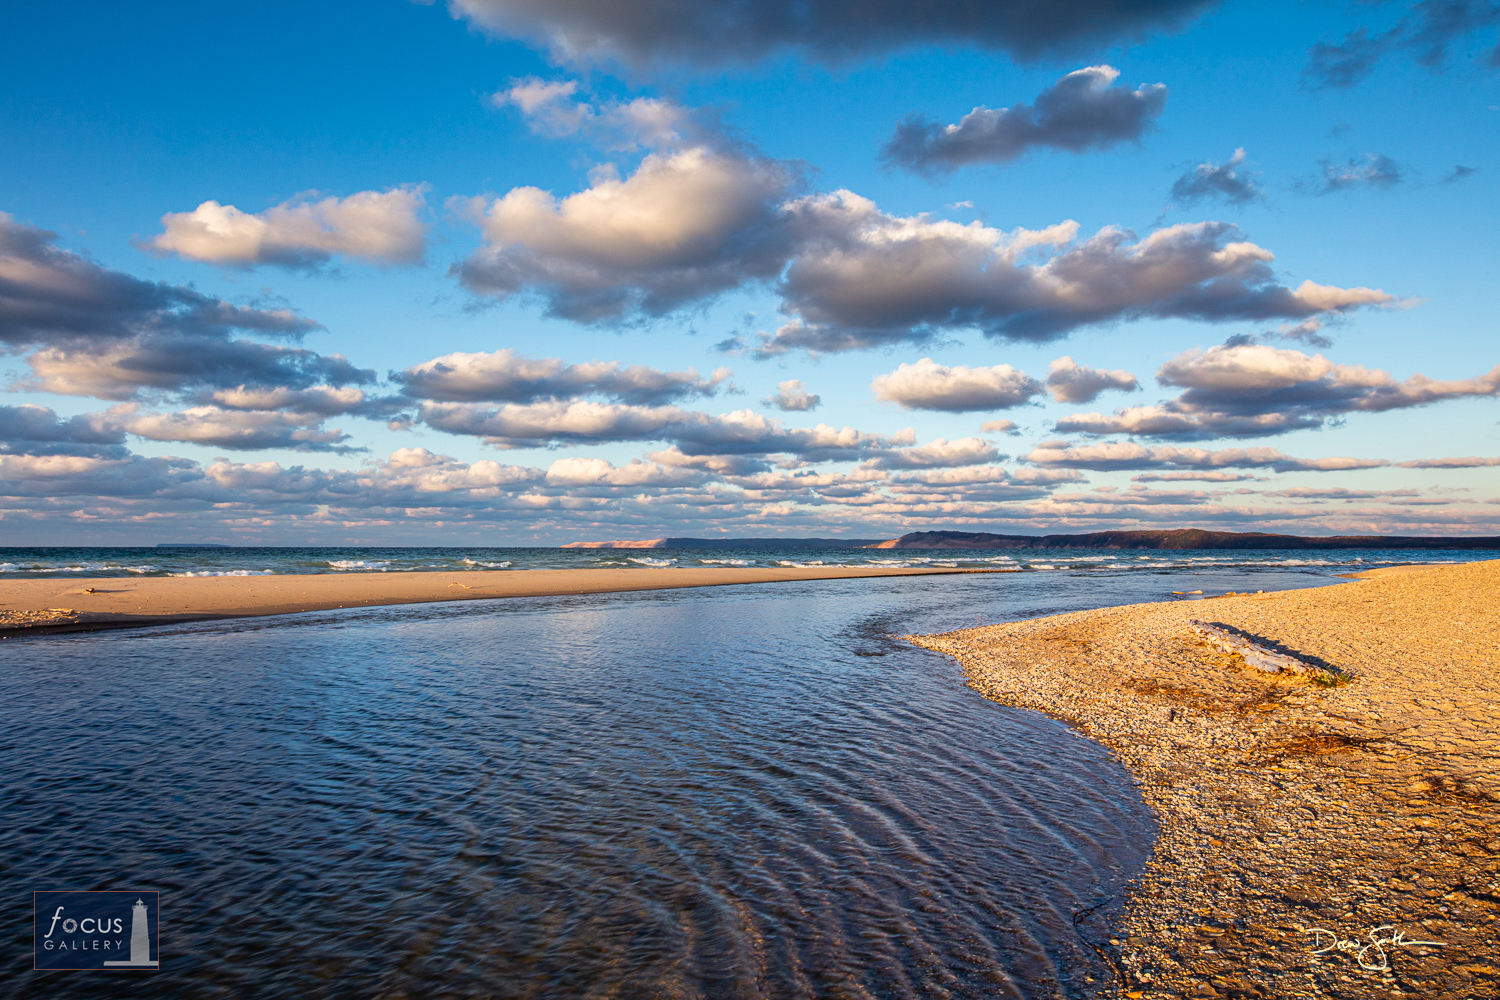 Photo © Drew Smith The Platte River flows into Platte Bay on Lake Michigan under blue skies and puffy clouds.  Platte River...